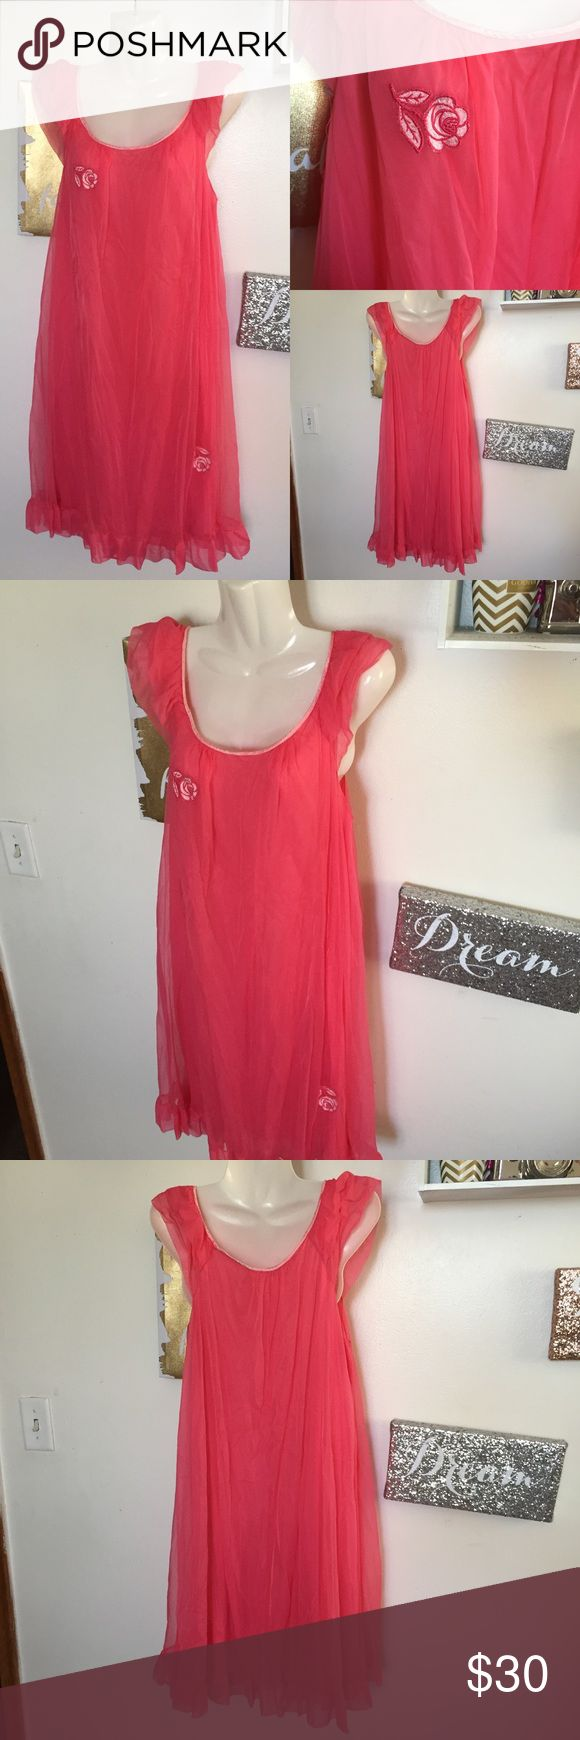 Vintage 1960's Gossard Artemis Gown Preowned in great condition. 100% nylon. 2 layers. Pink satin neckline. Flower decorations. 2 layers of ruffles on the shoulders. Smoke free home. The color is coral Gossard Artemis Intimates & Sleepwear Chemises & Slips